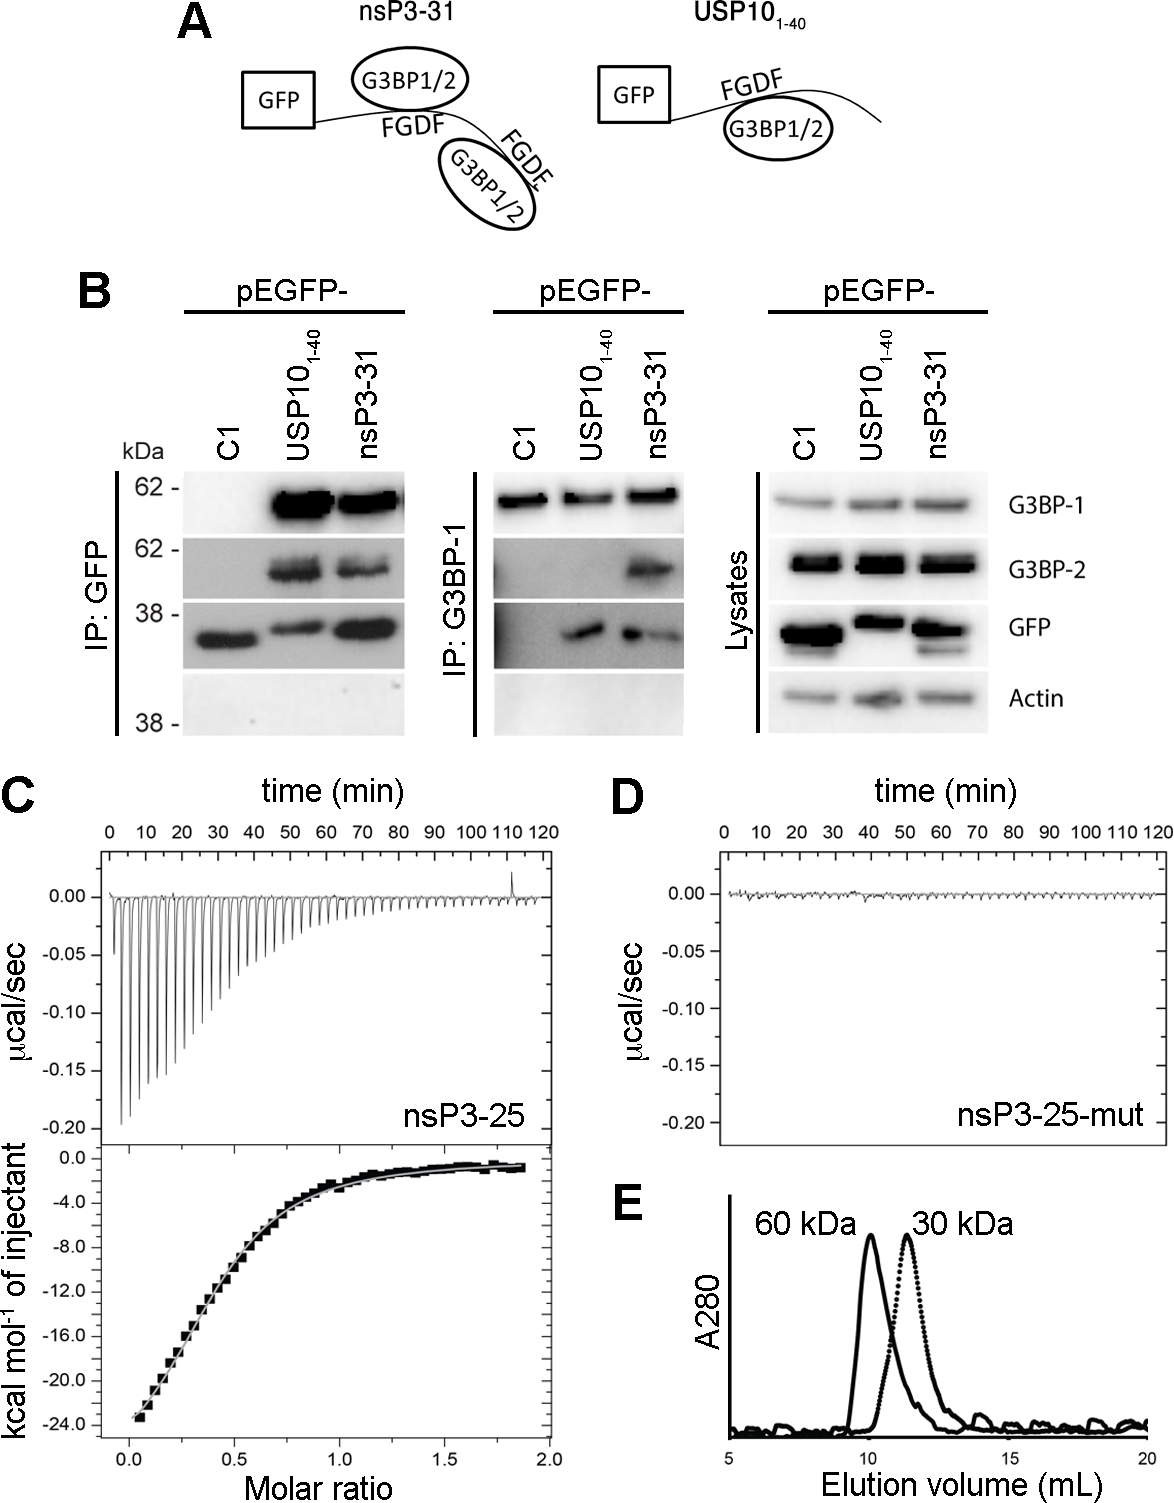 SFV nsP3, containing two FGDF repeats, binds two G3BP molecules, while USP10 binds only one.